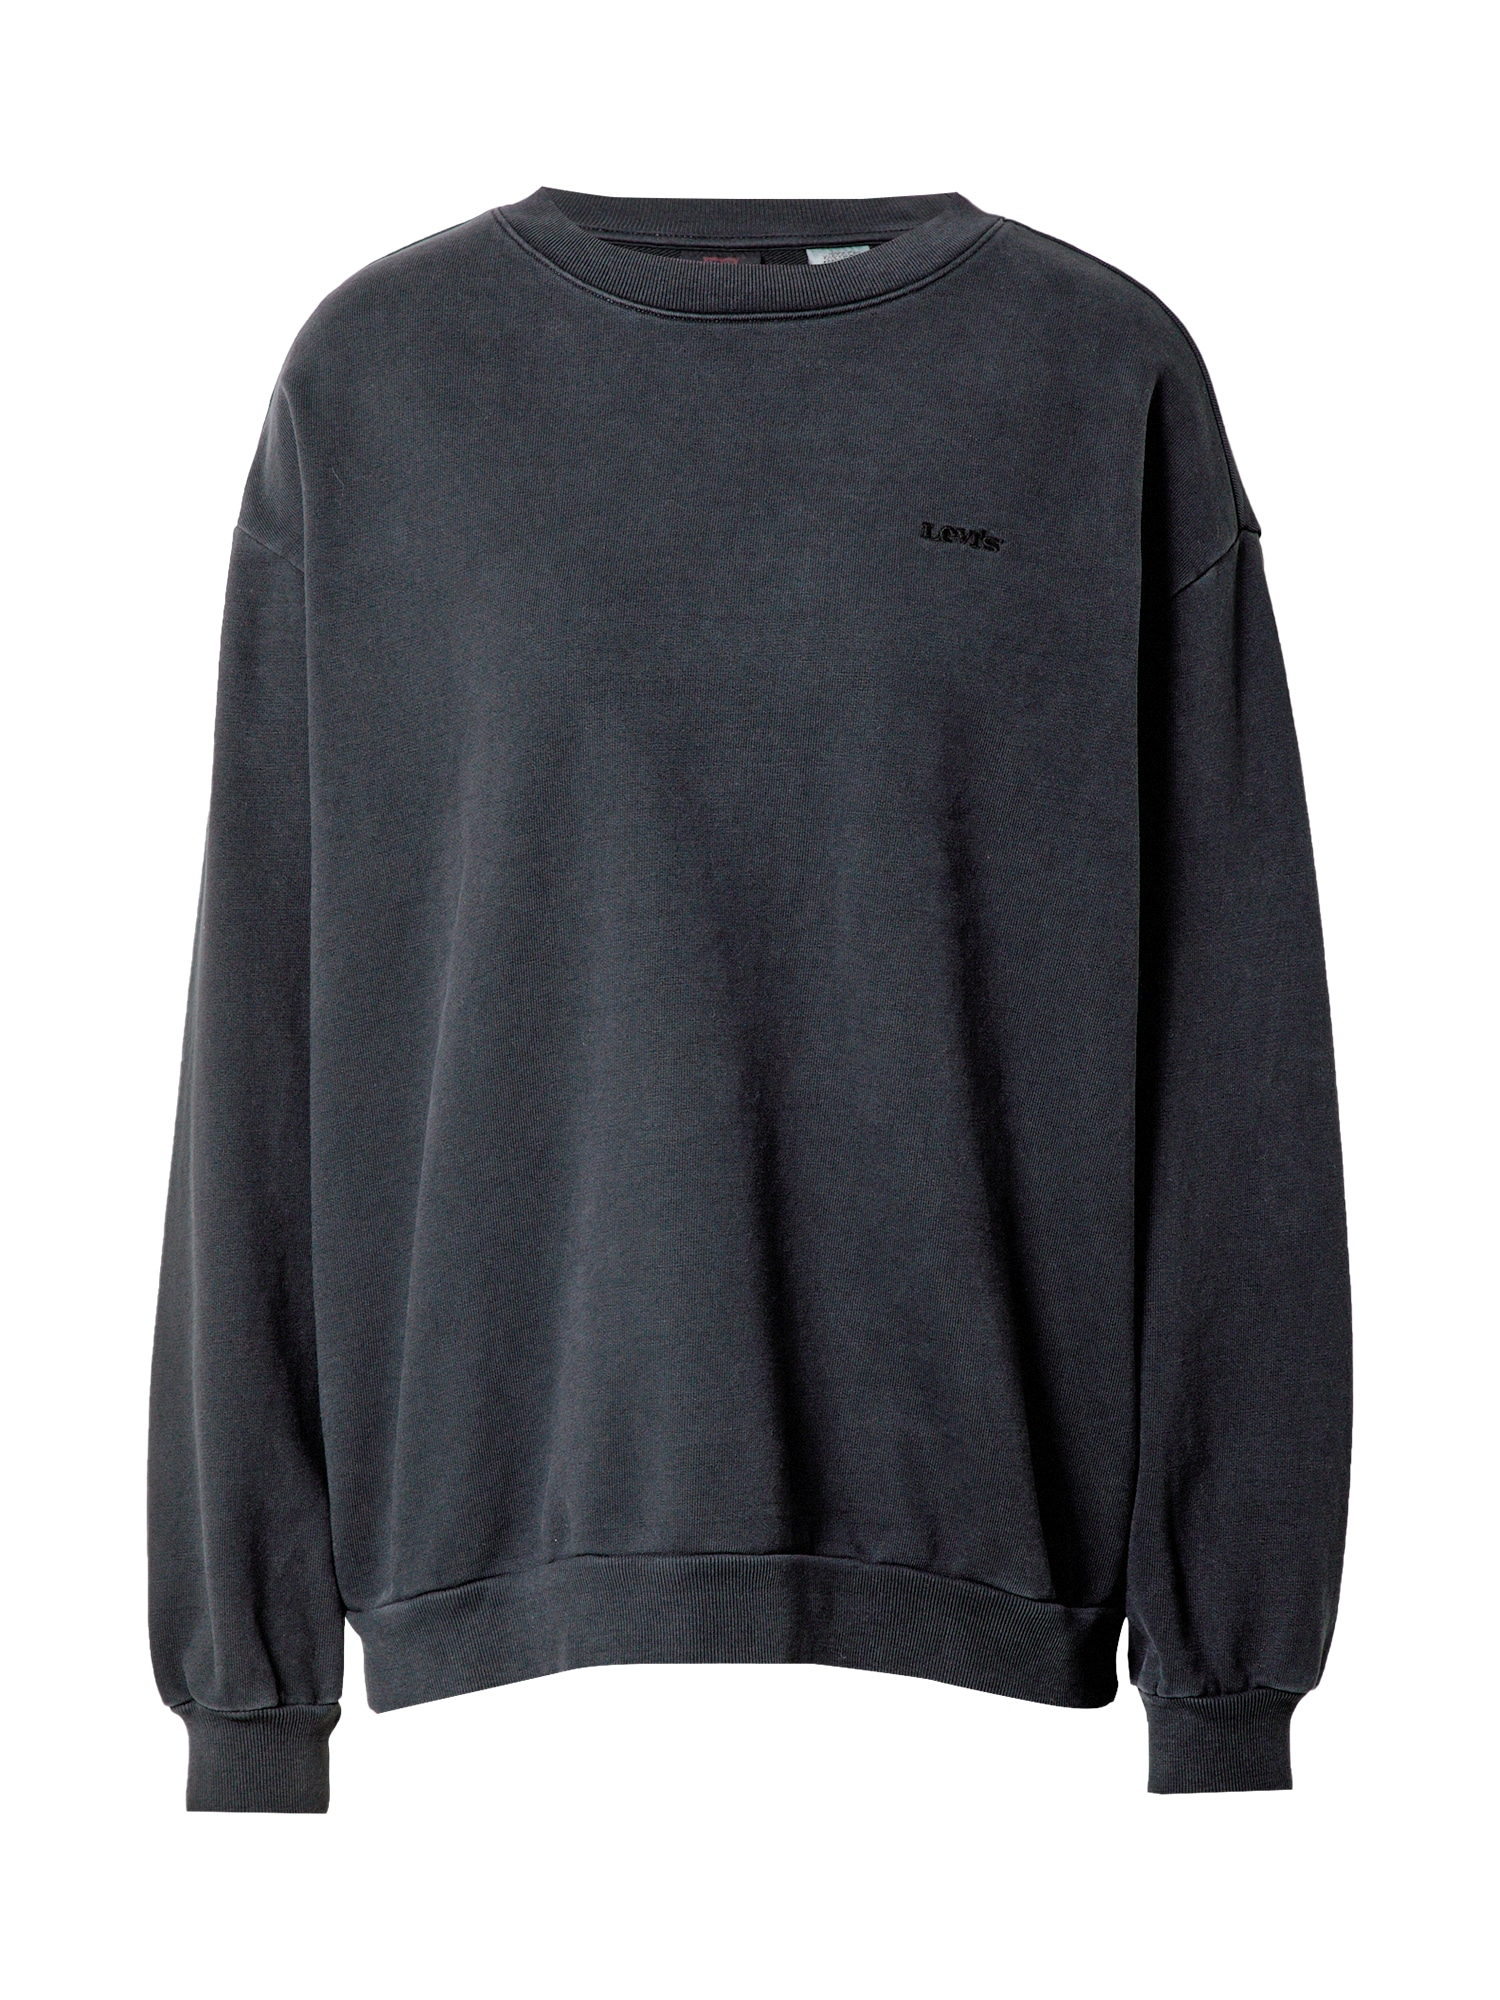 LEVIS Mikina Melrose Slouchy Crew antracitová Levis